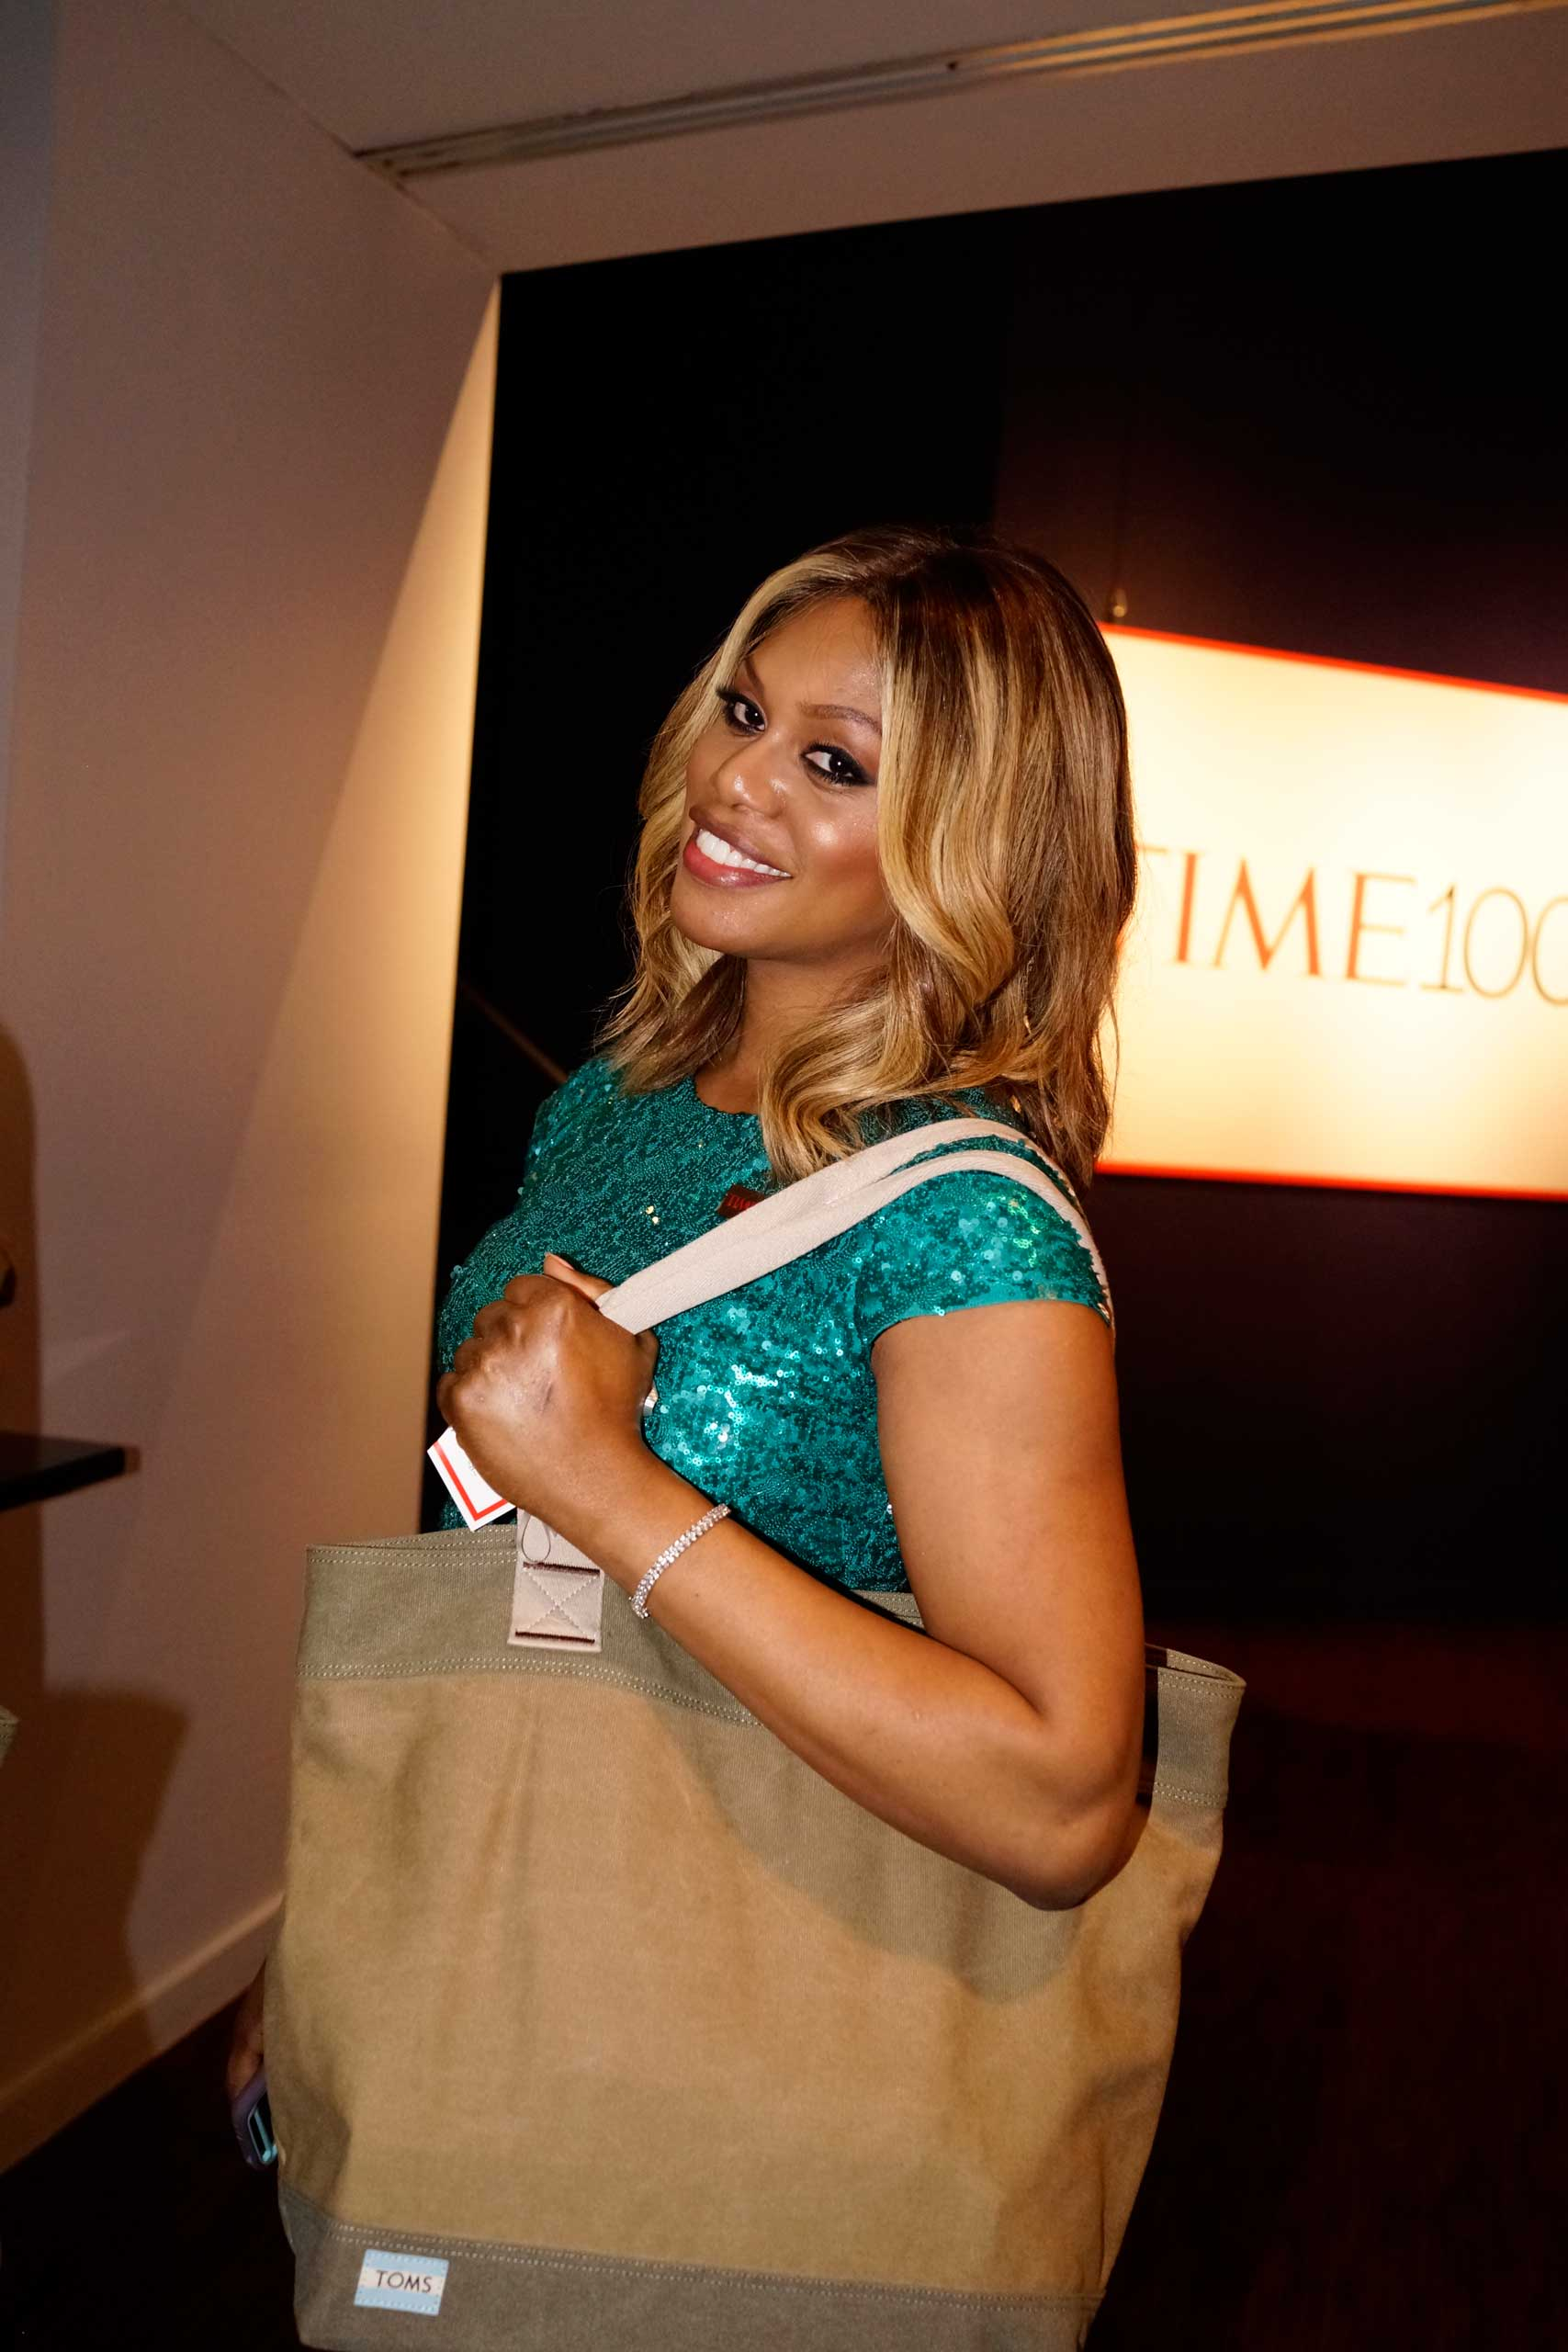 Laverne Cox poses with a TIME 100 gift bag as she attends the TIME 100 Gala at Jazz at Lincoln Center in New York, NY, on Apr. 21, 2015.